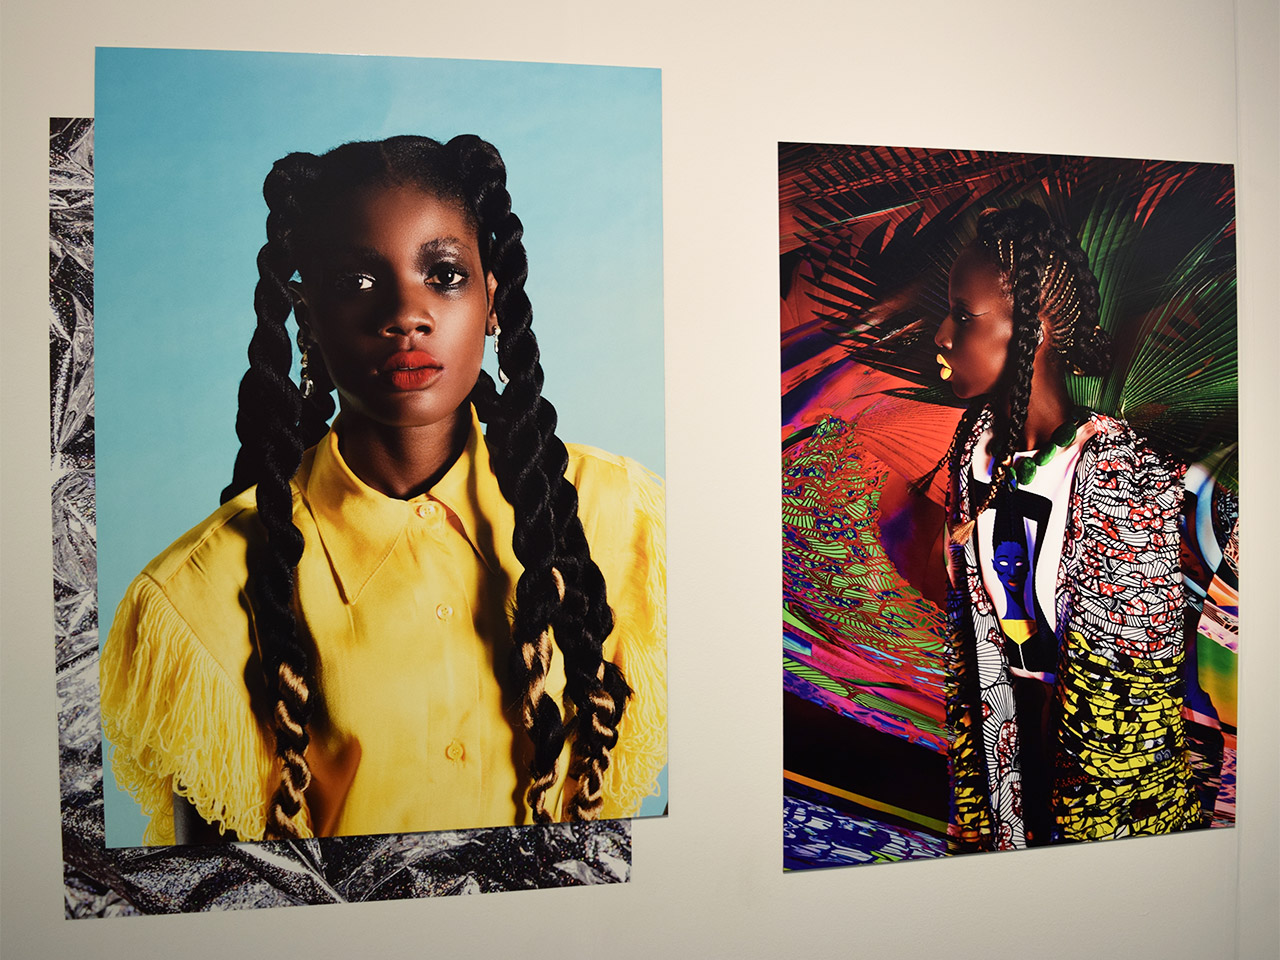 Photos by Namsa Leuba in the Echo Art booth at the 2016 Armory Show